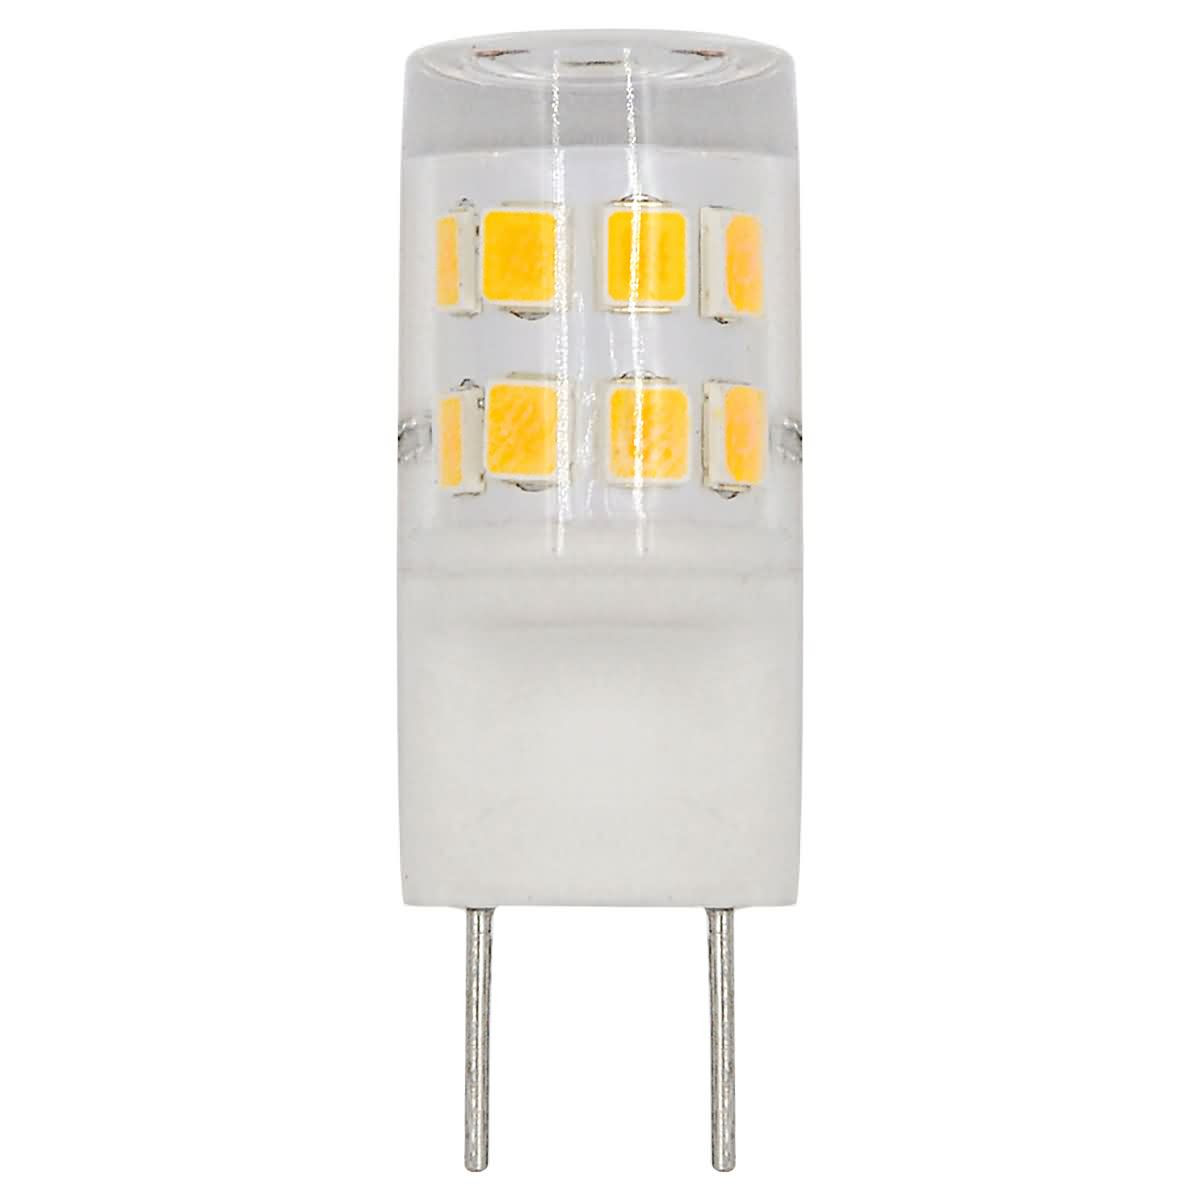 MENGS® G8 2W LED Light 17x 2835 SMD LED Bulb Lamp AC 220-240V In Warm White Energy-Saving Light